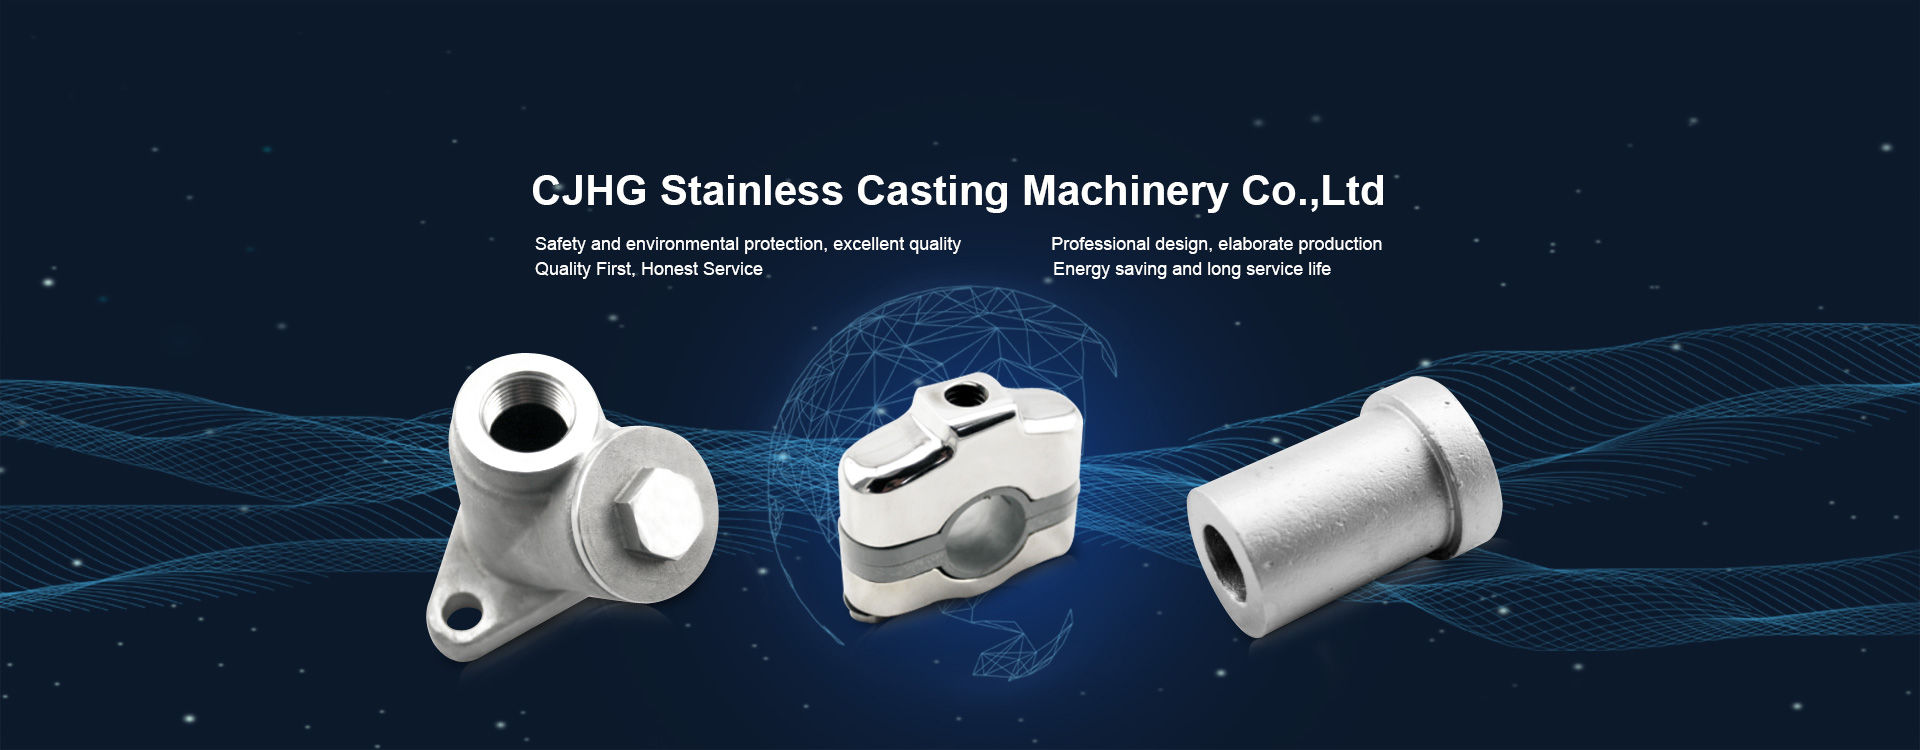 product-CJHG Stainless Casting Machinery Co.,Ltd